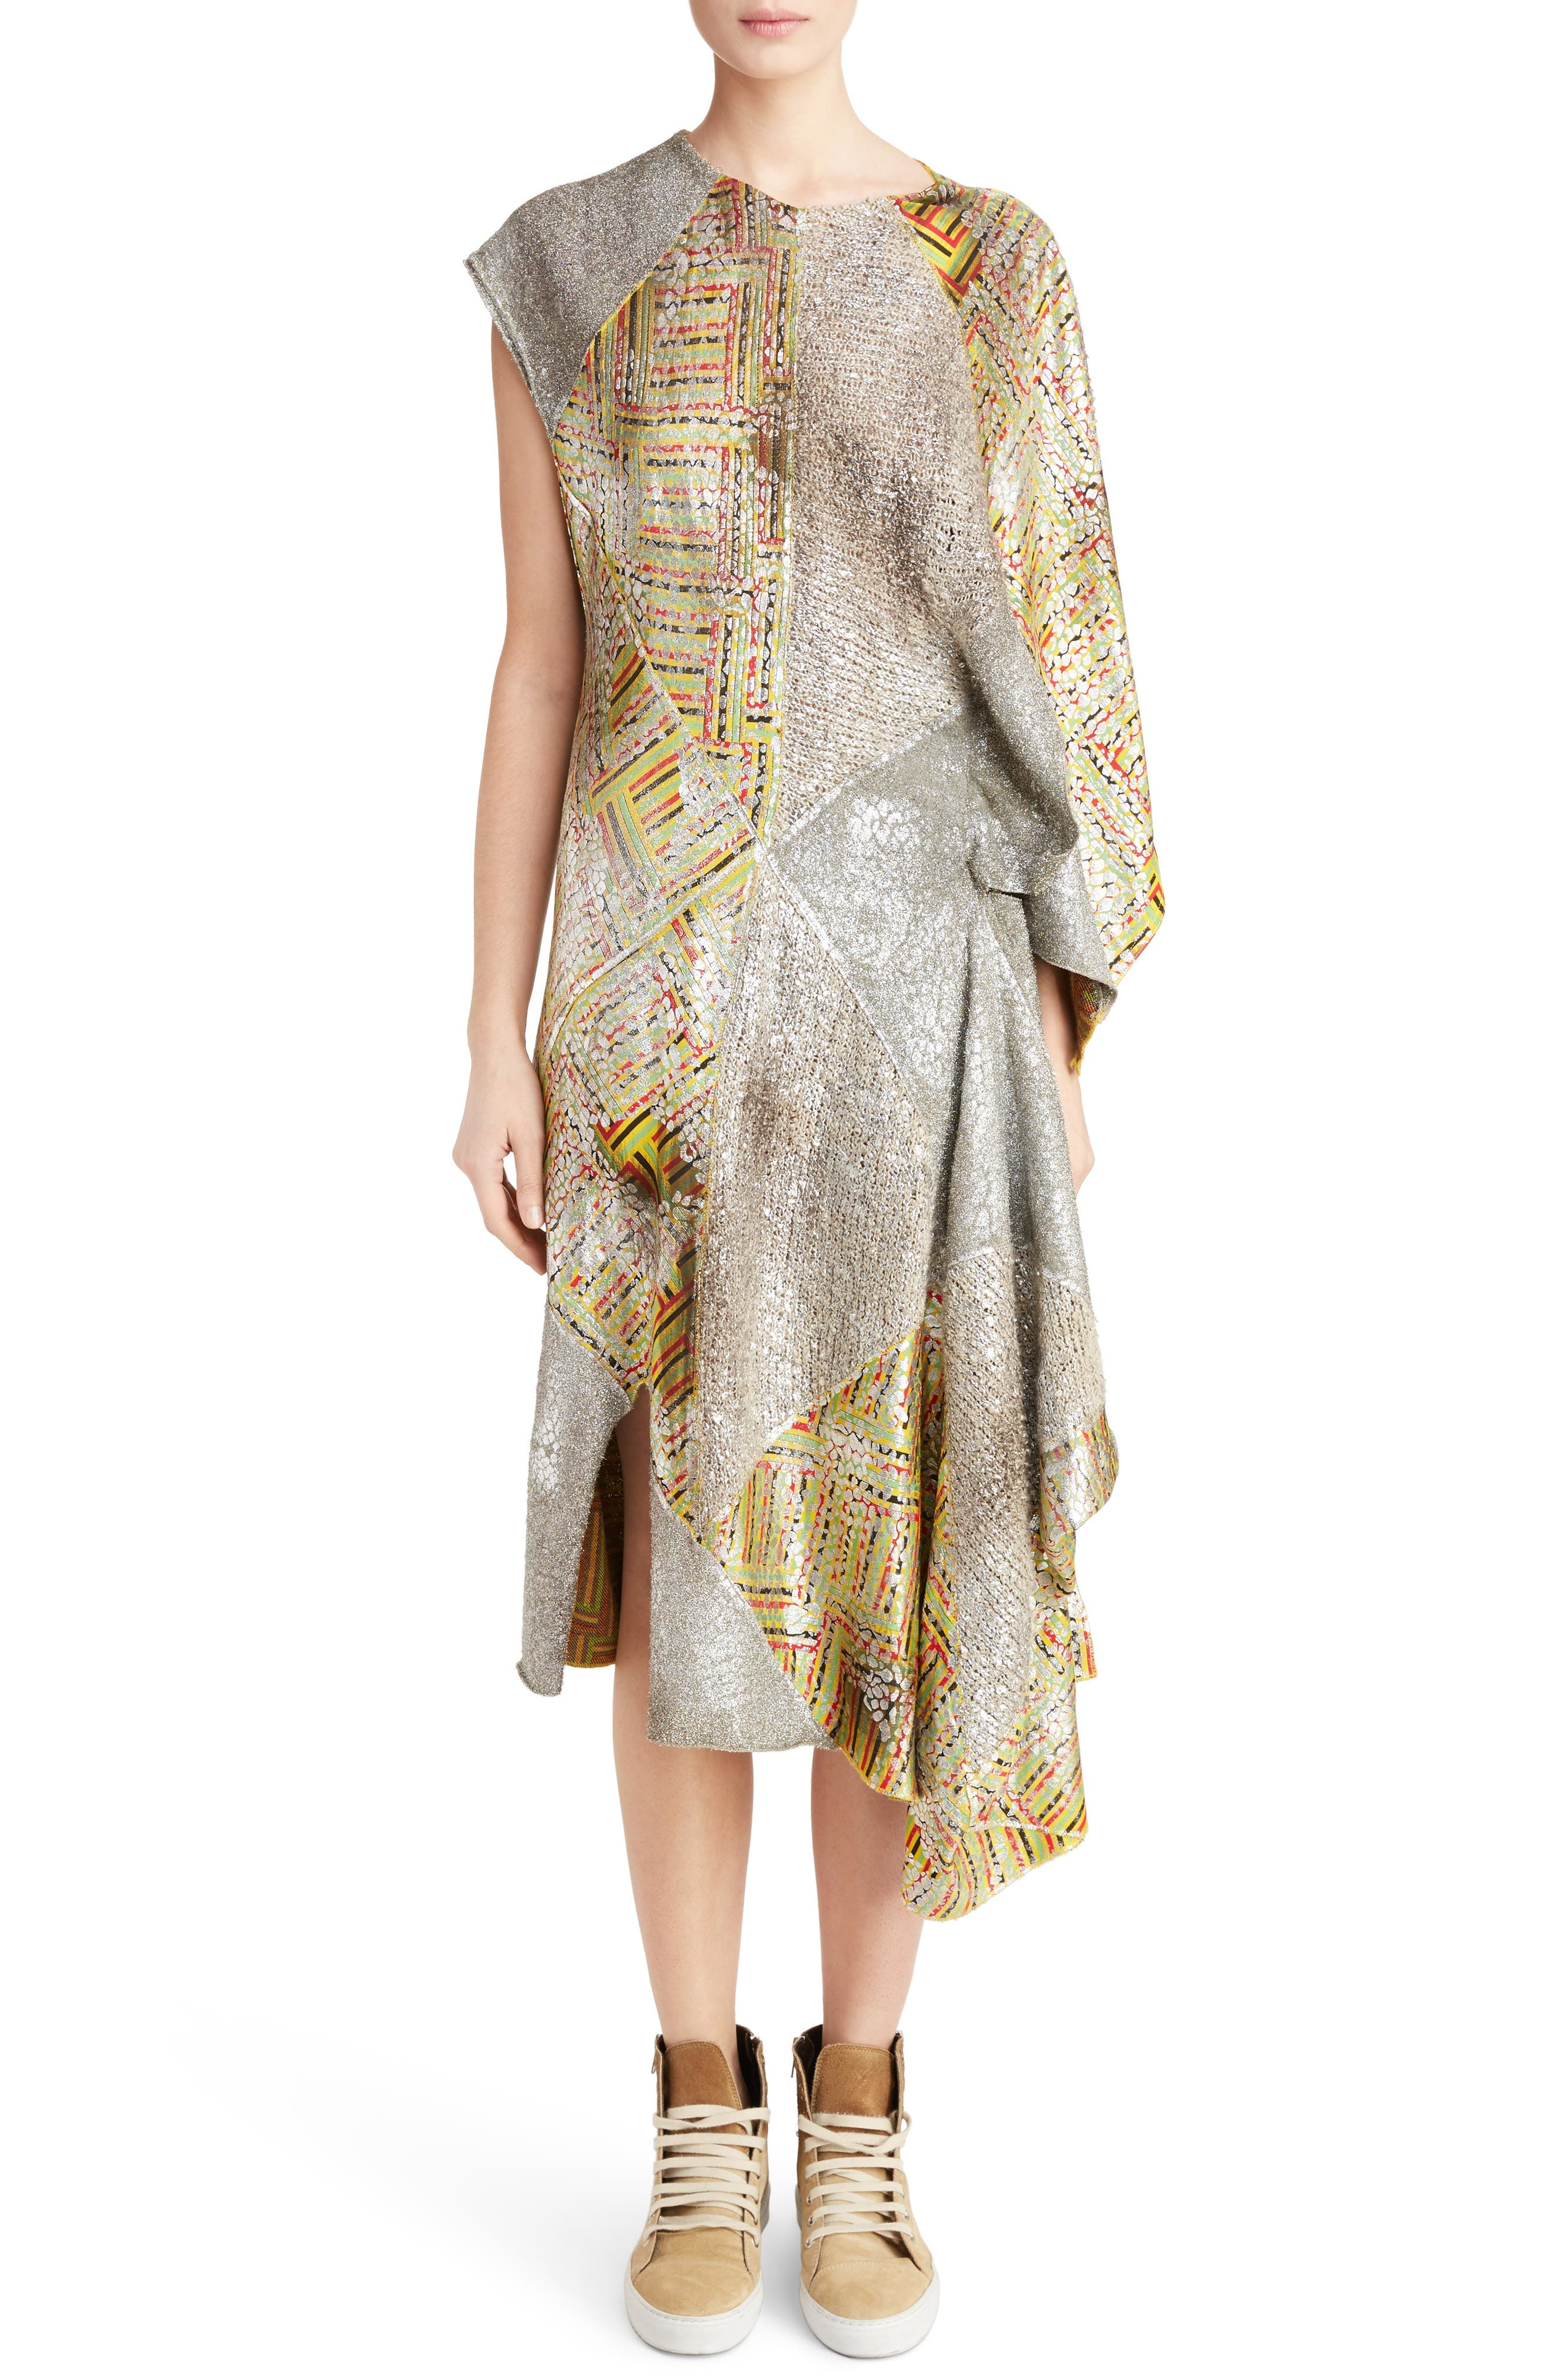 J.W.ANDERSON Geo Patterned Asymmetrical Draped Dress,                             Main thumbnail 1, color,                             040